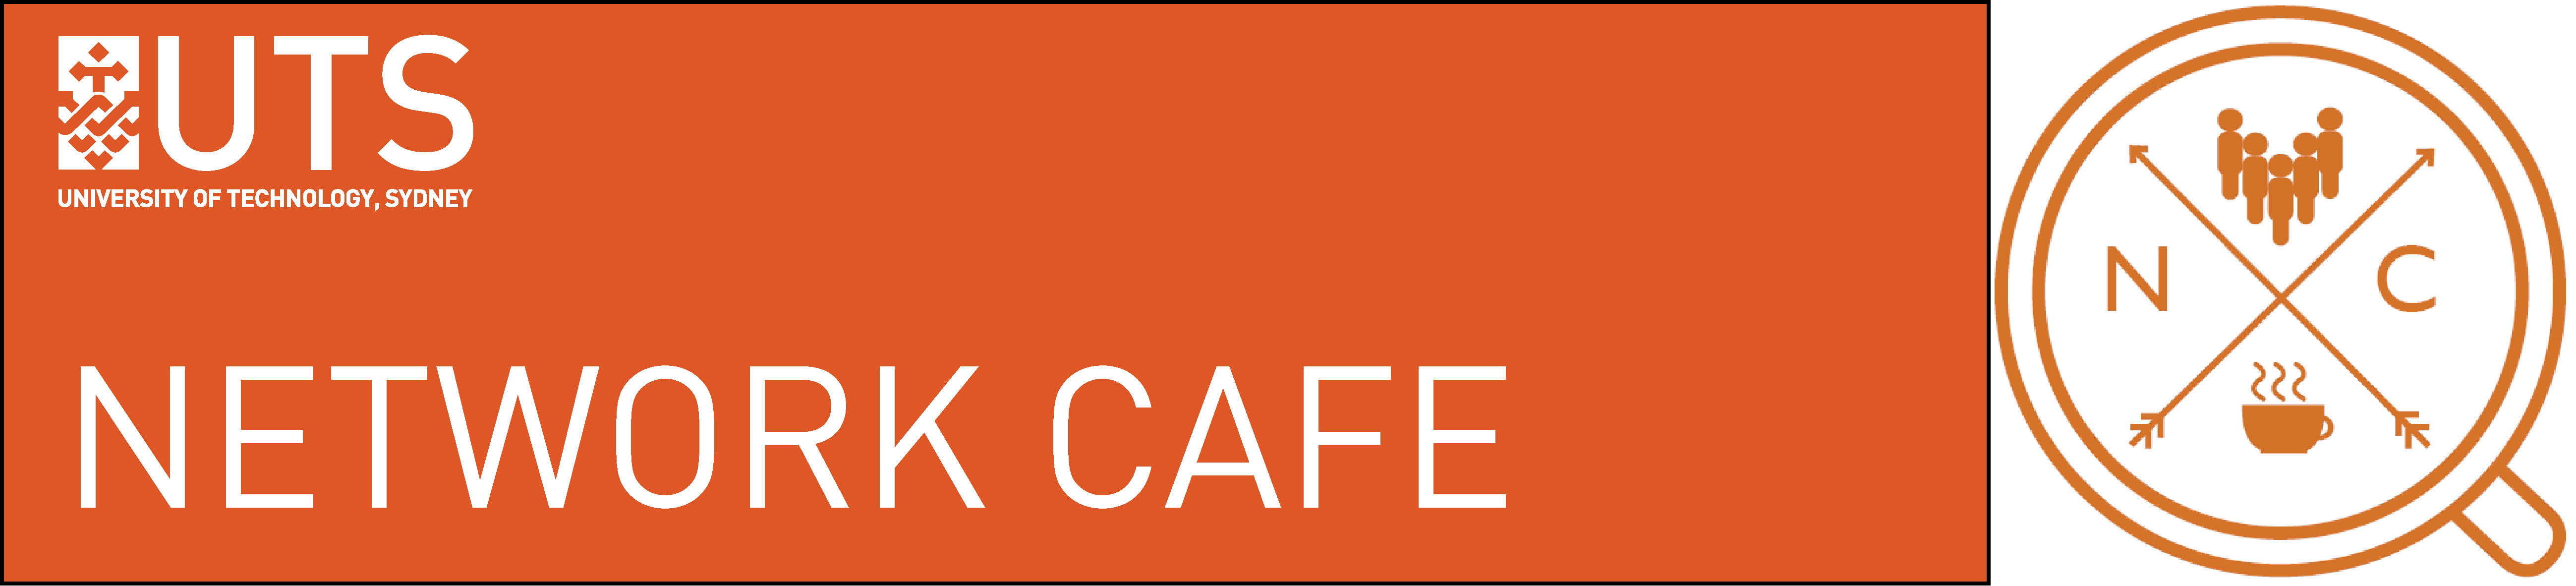 Network Cafe Banner new logo